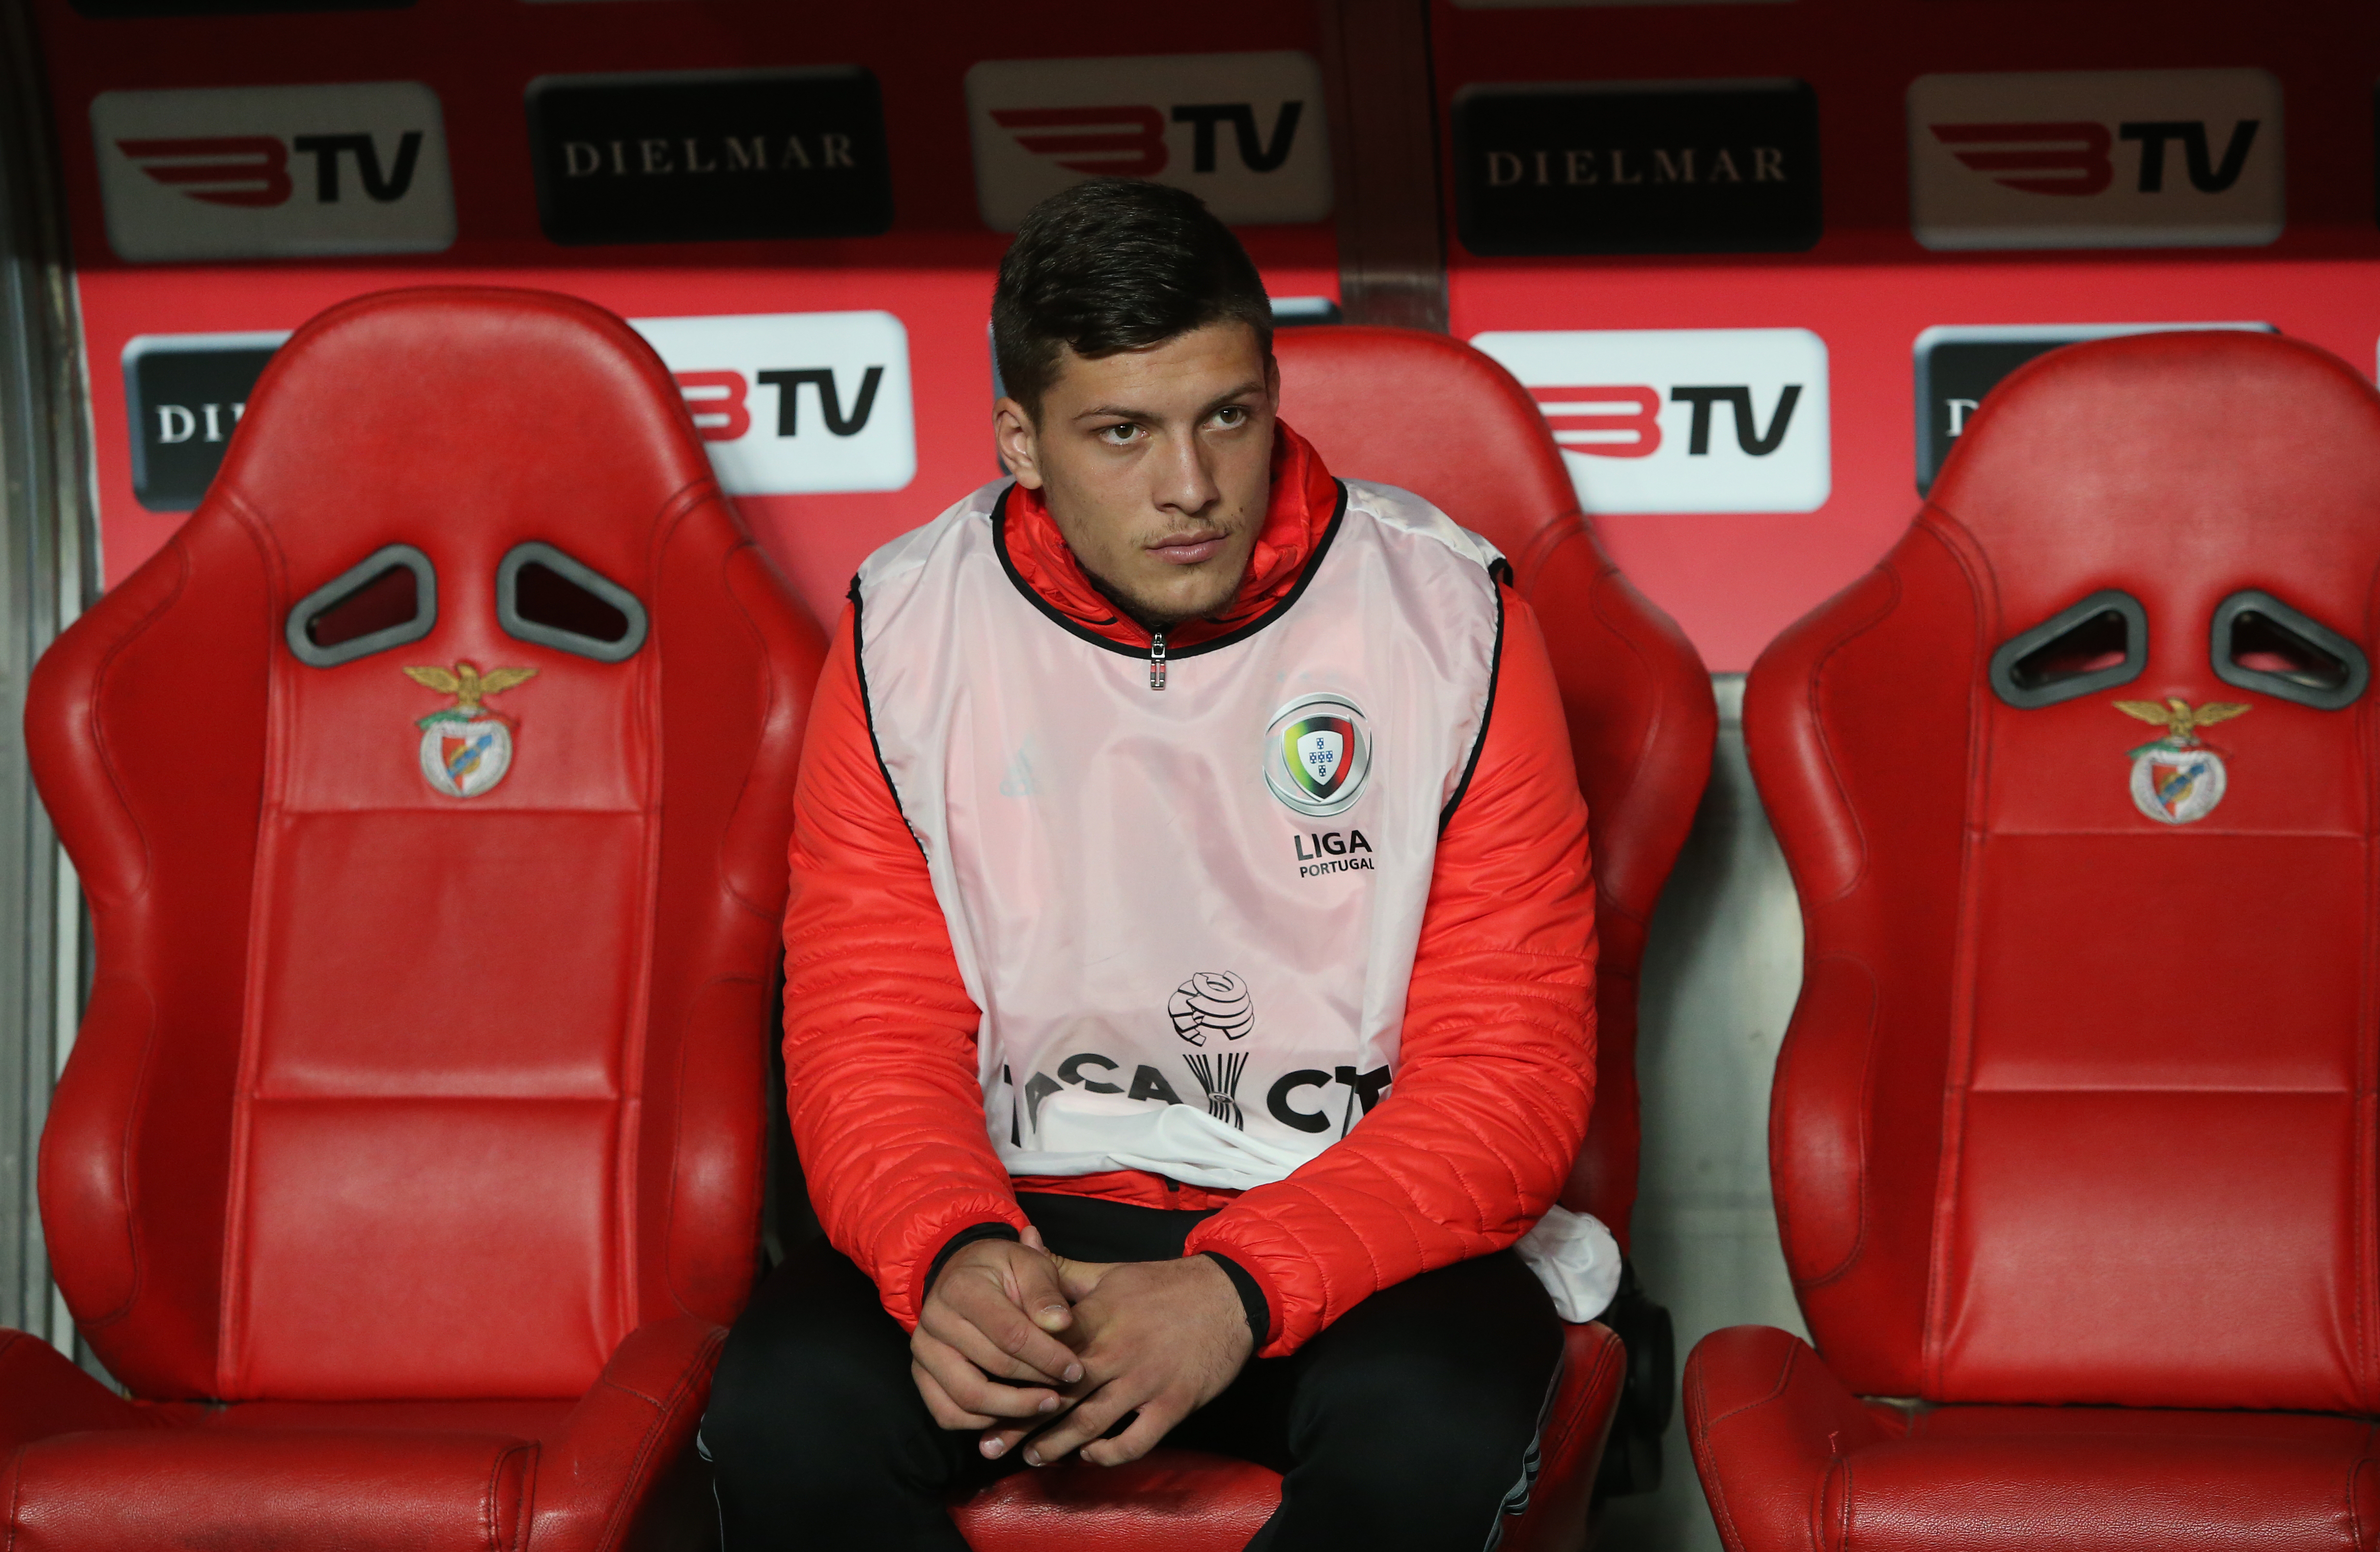 Jovic's time at Benfica was frustrating